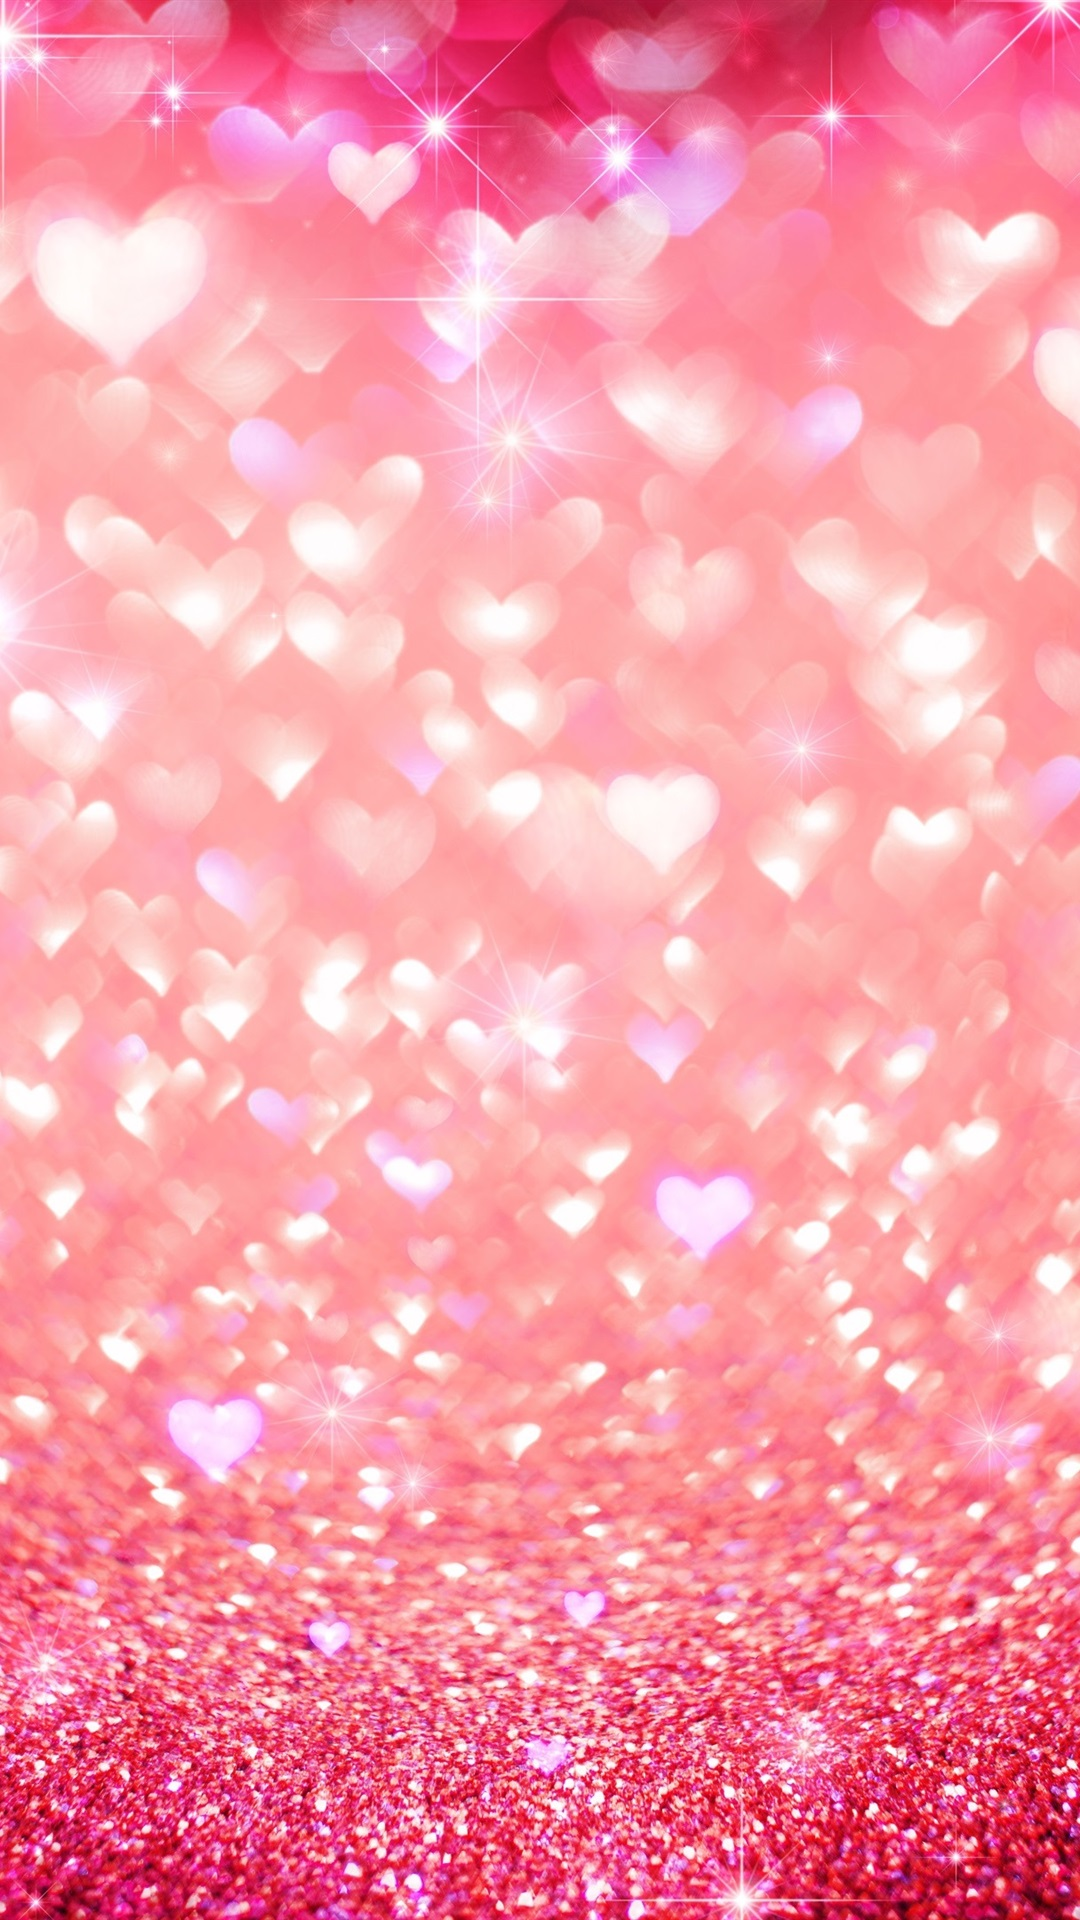 Pink Love Heart Shine Glitter 1080x1920 Iphone 8766s Plus